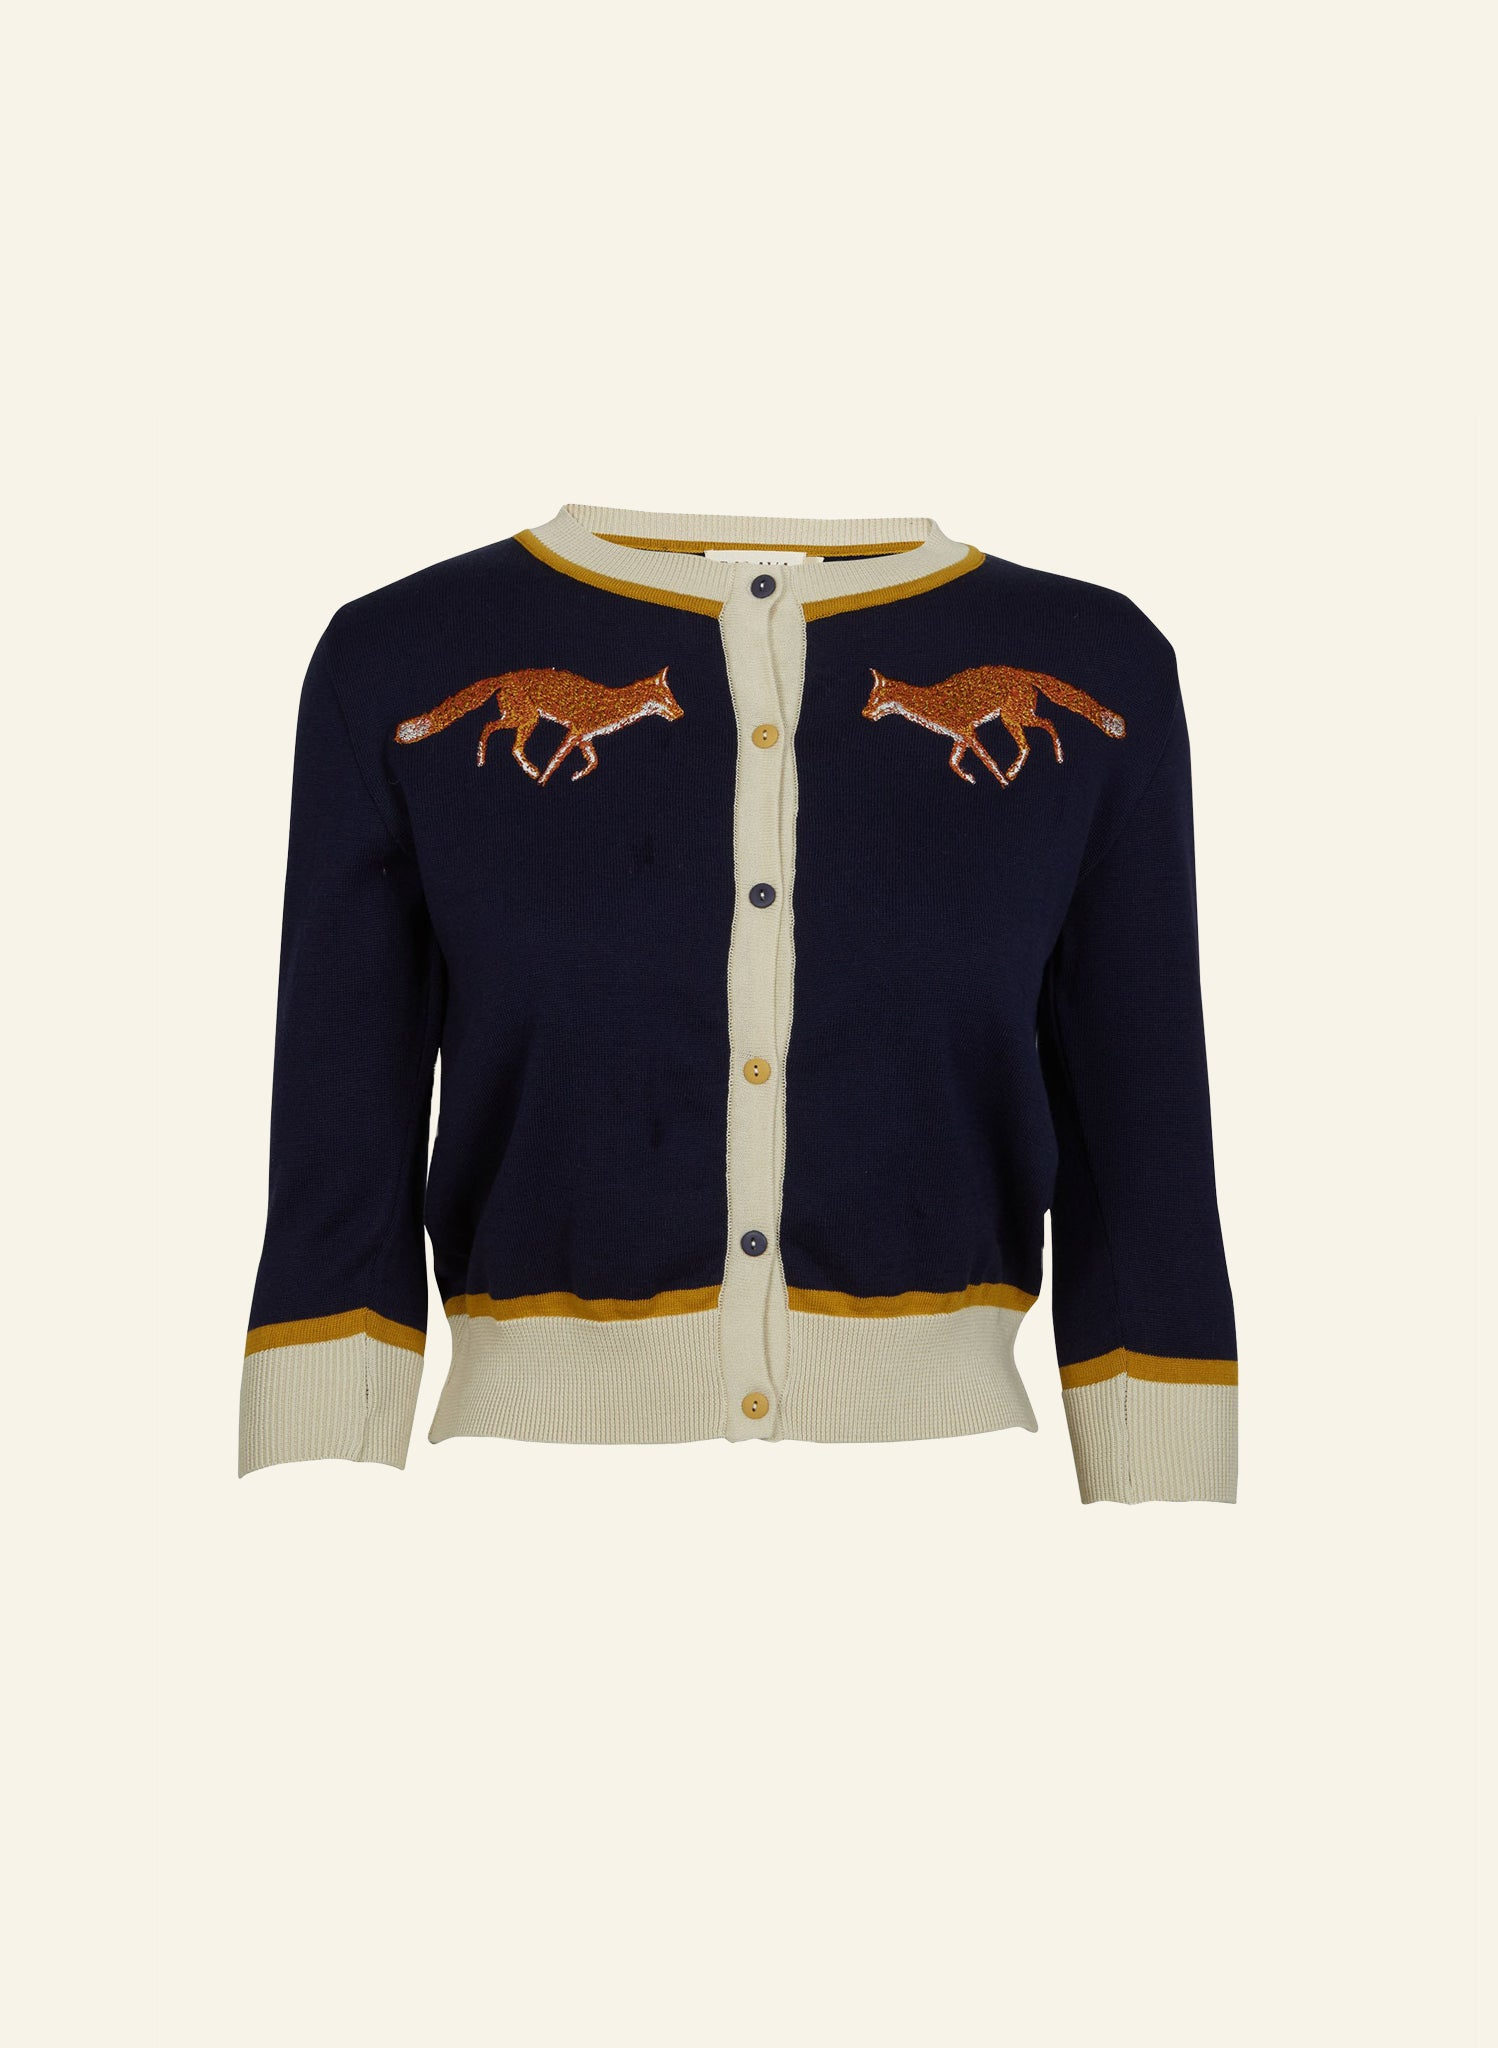 Vera - Navy Fox - Organic Cotton Cardigan